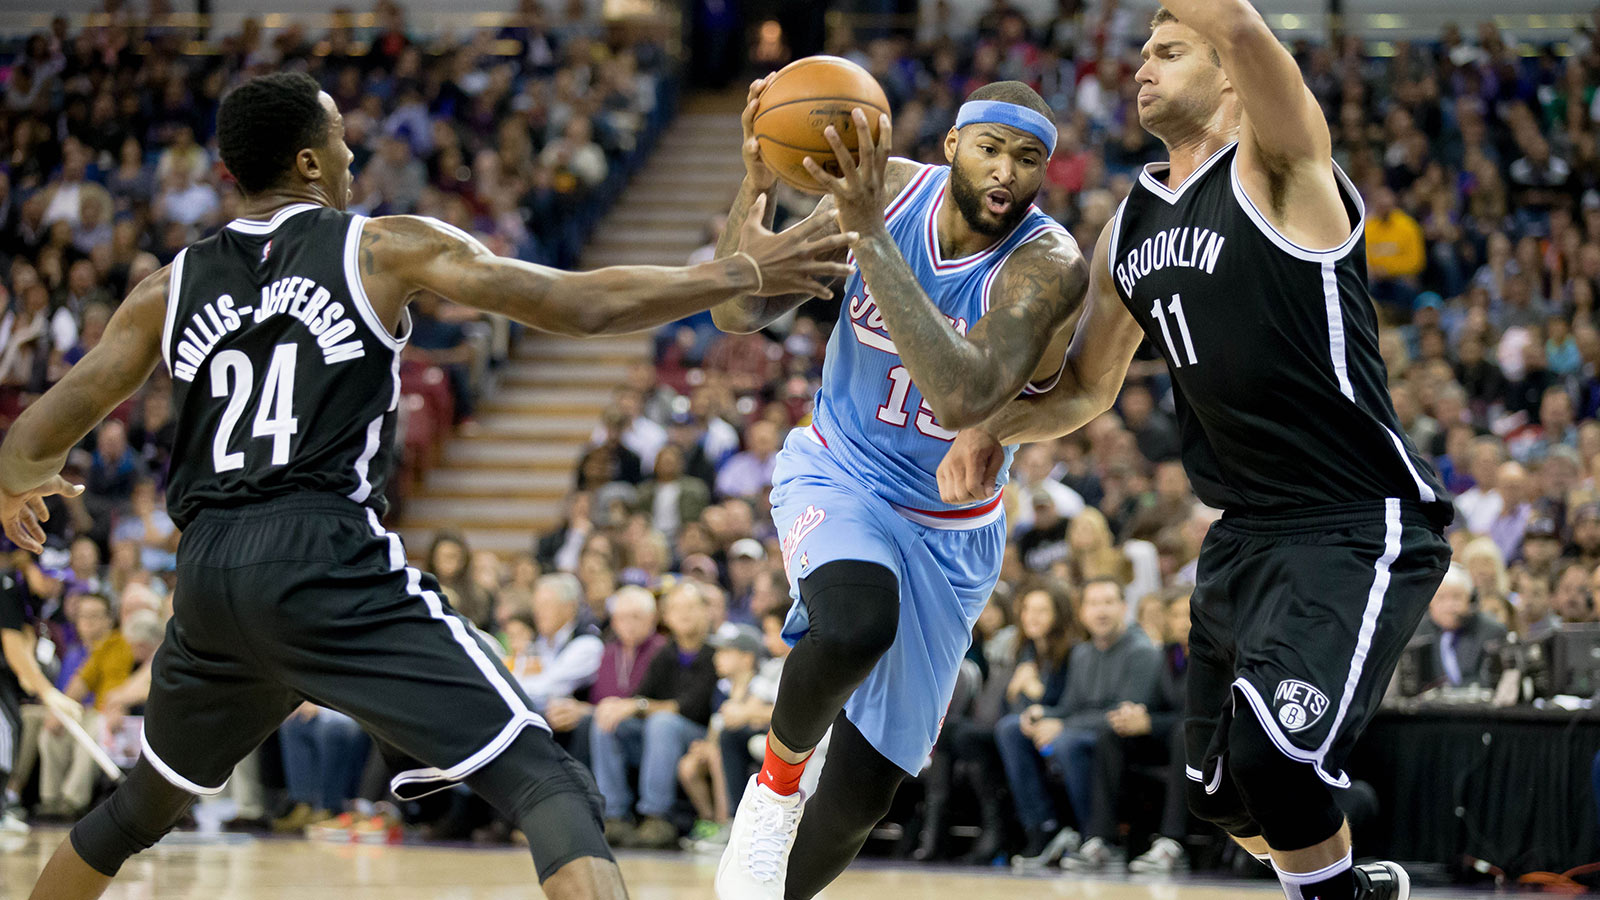 Cousins' 40 points, Rondo's triple-double lift Kings